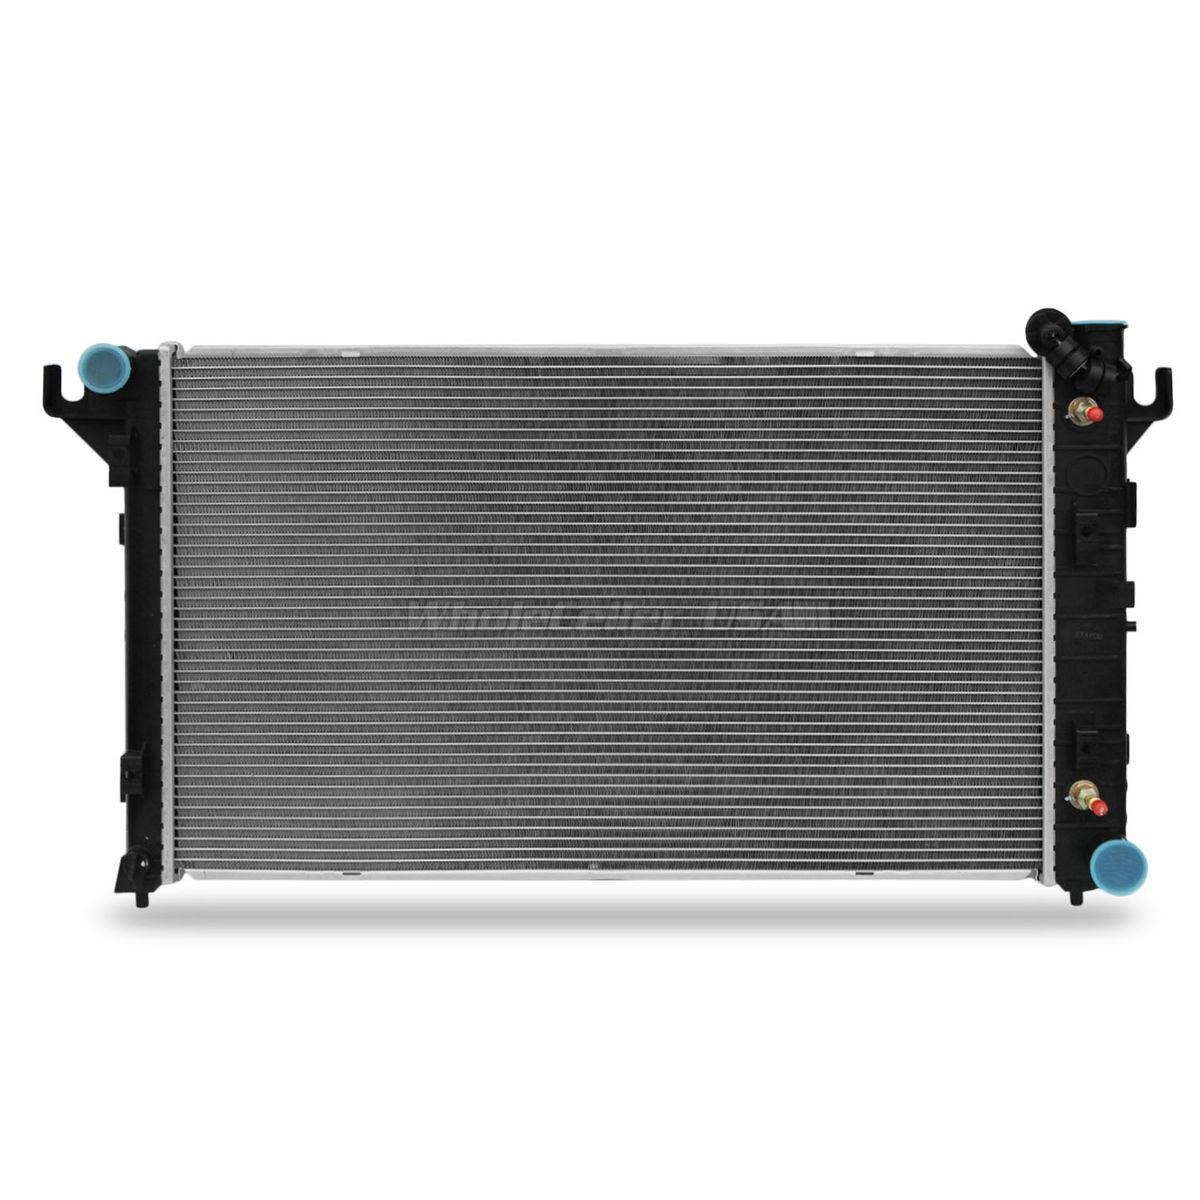 STAYCO Radiator For 1994 1995 1996 1997 Dodge Ram 1500